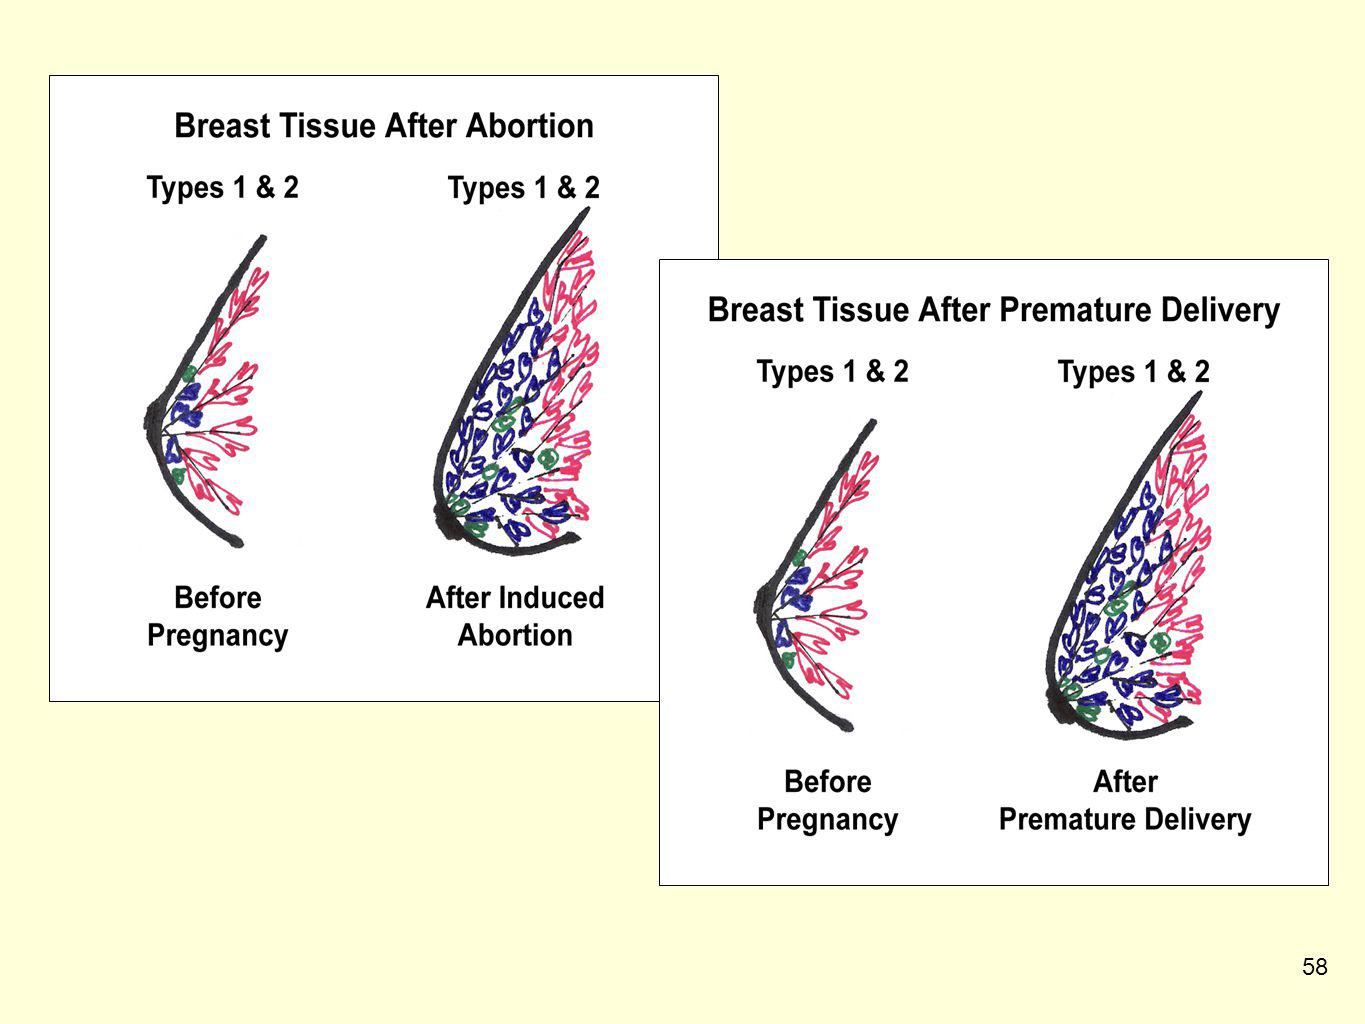 The breasts after an abortion are structurally the same as the breasts after premature delivery (before 32 weeks gestation). In both cases, the woman is left with more places in her breasts for cancers to start. The hormonal changes to the breasts are identical.